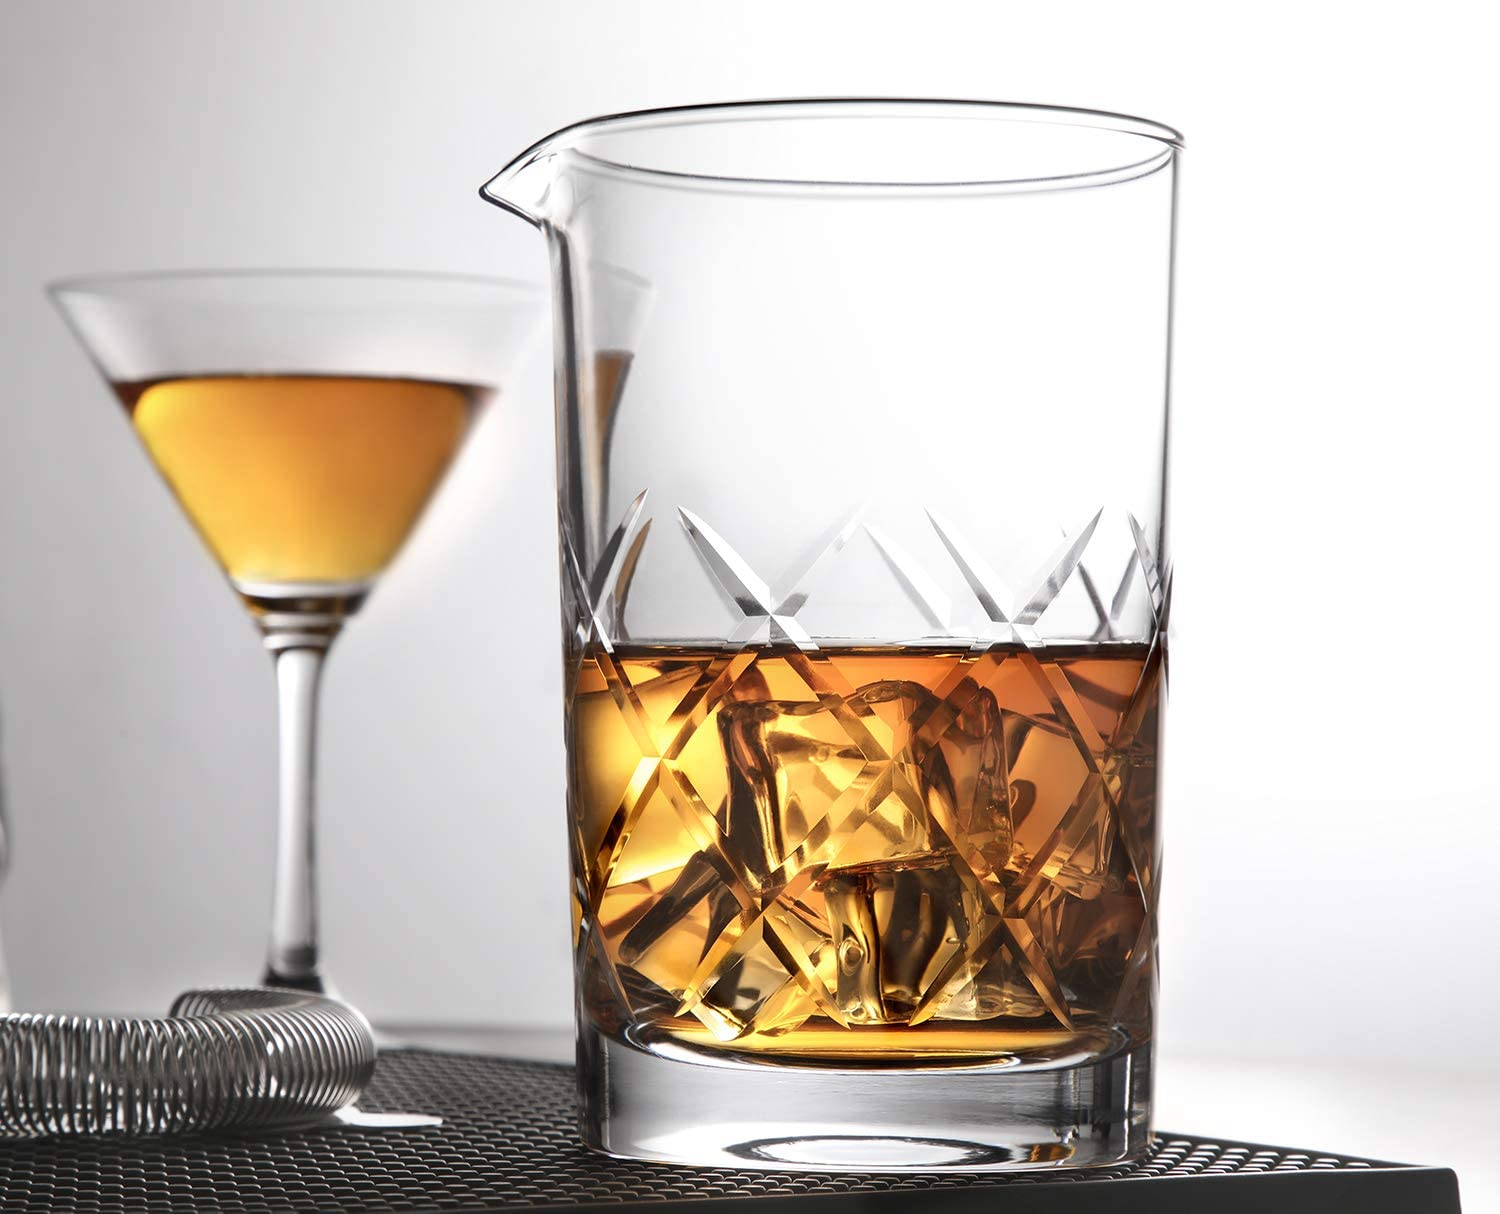 mixing glass with laser etching next to cocktail in martini glass